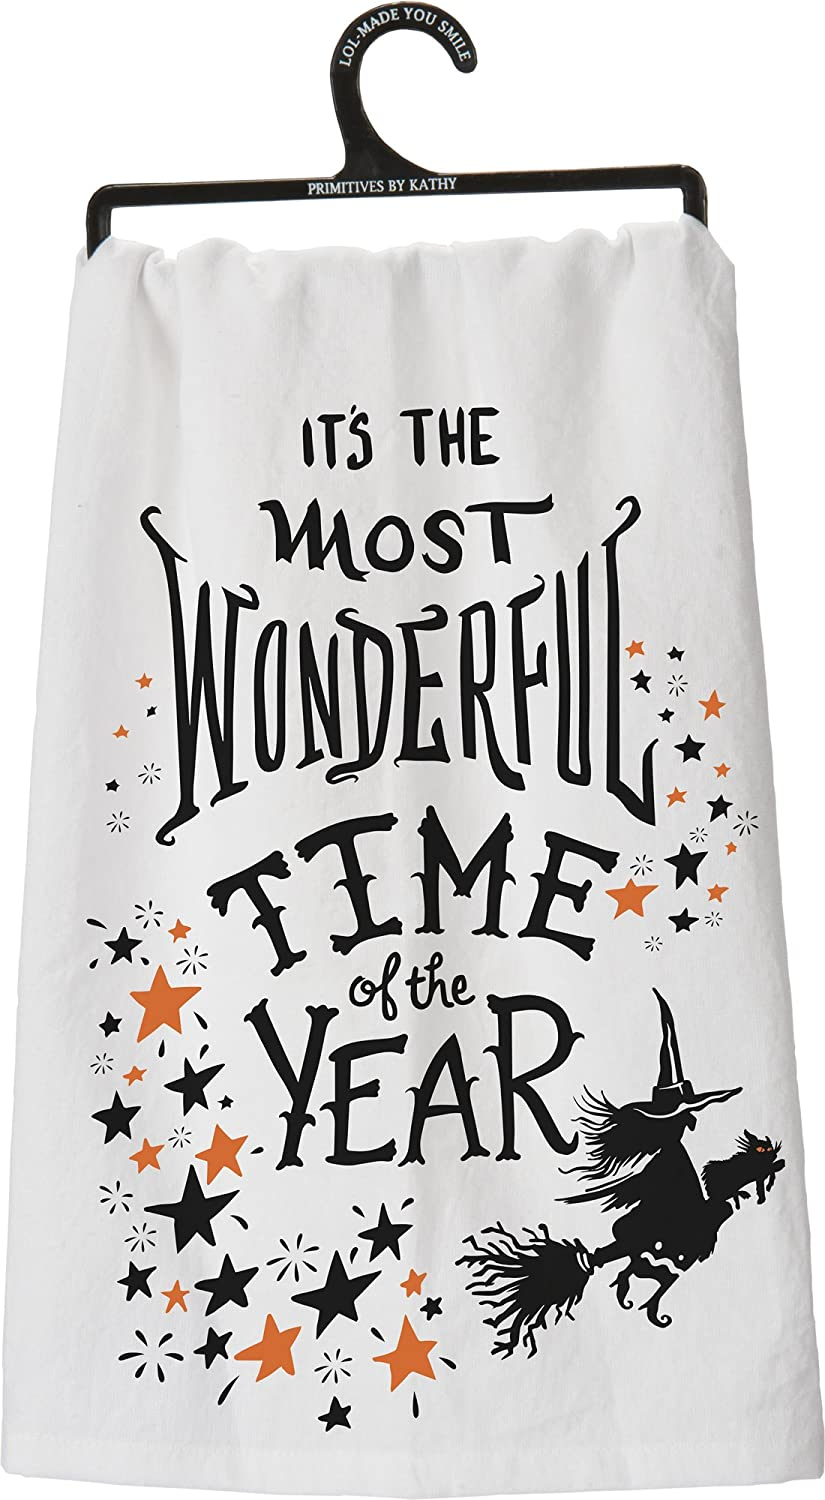 amazoncom primitives by kathy its the most wonderful time of the year halloween cotton lol towel home kitchen - Primitives By Kathy Halloween